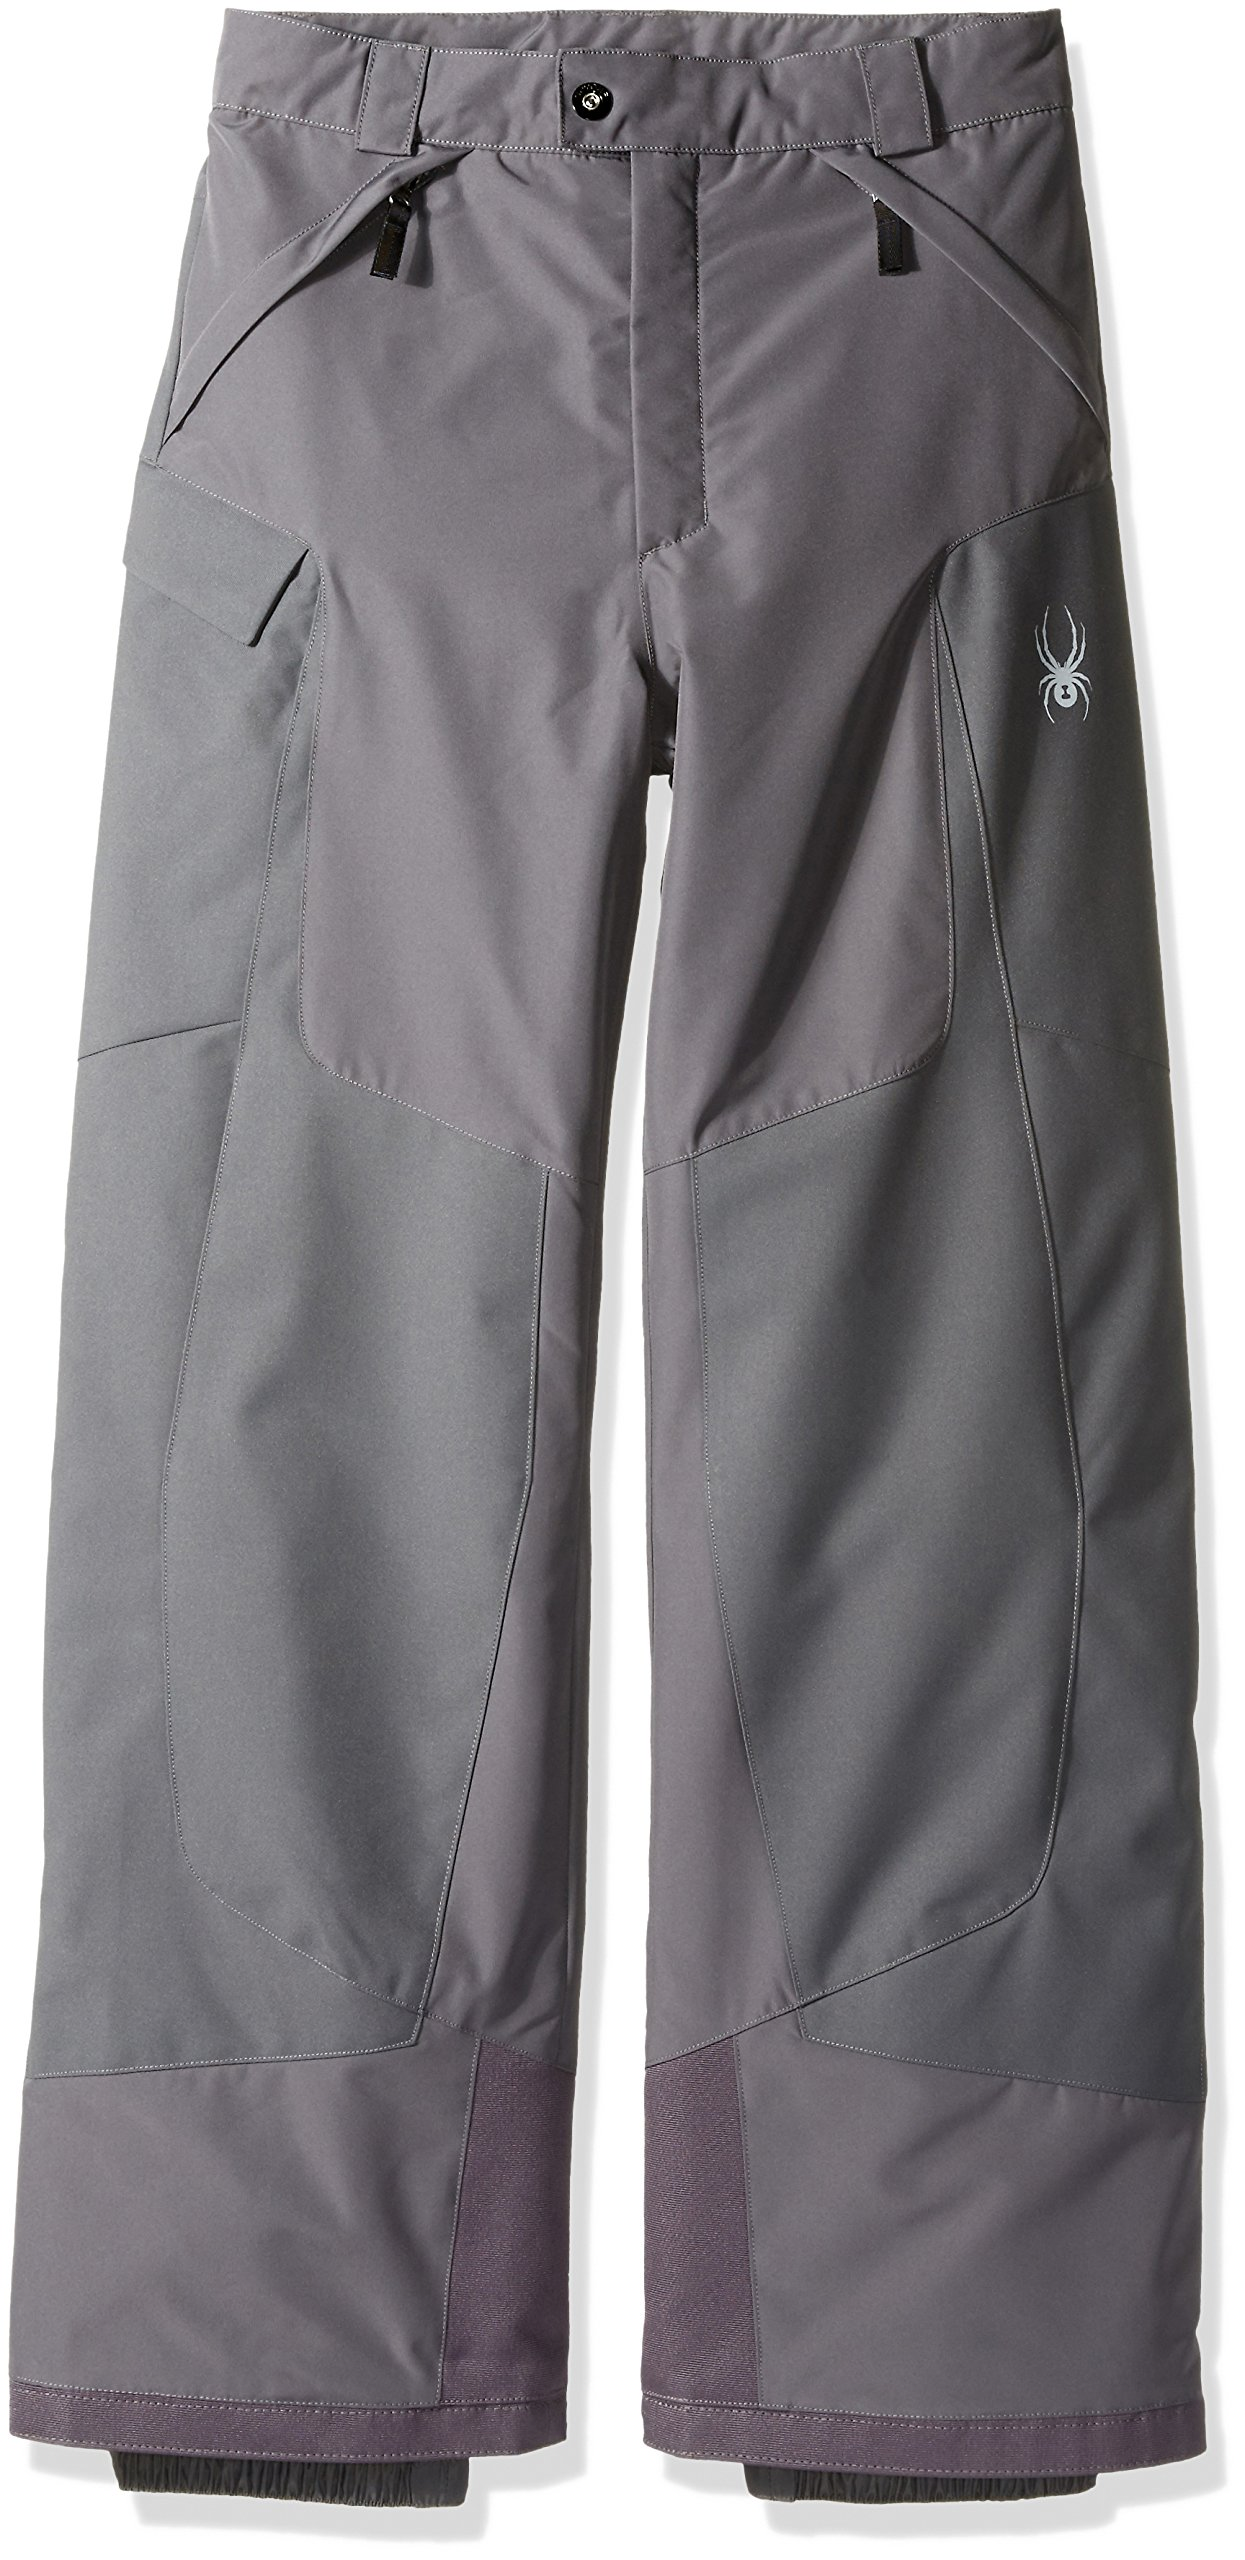 Spyder Boys Action Pants, Size 8, Polar